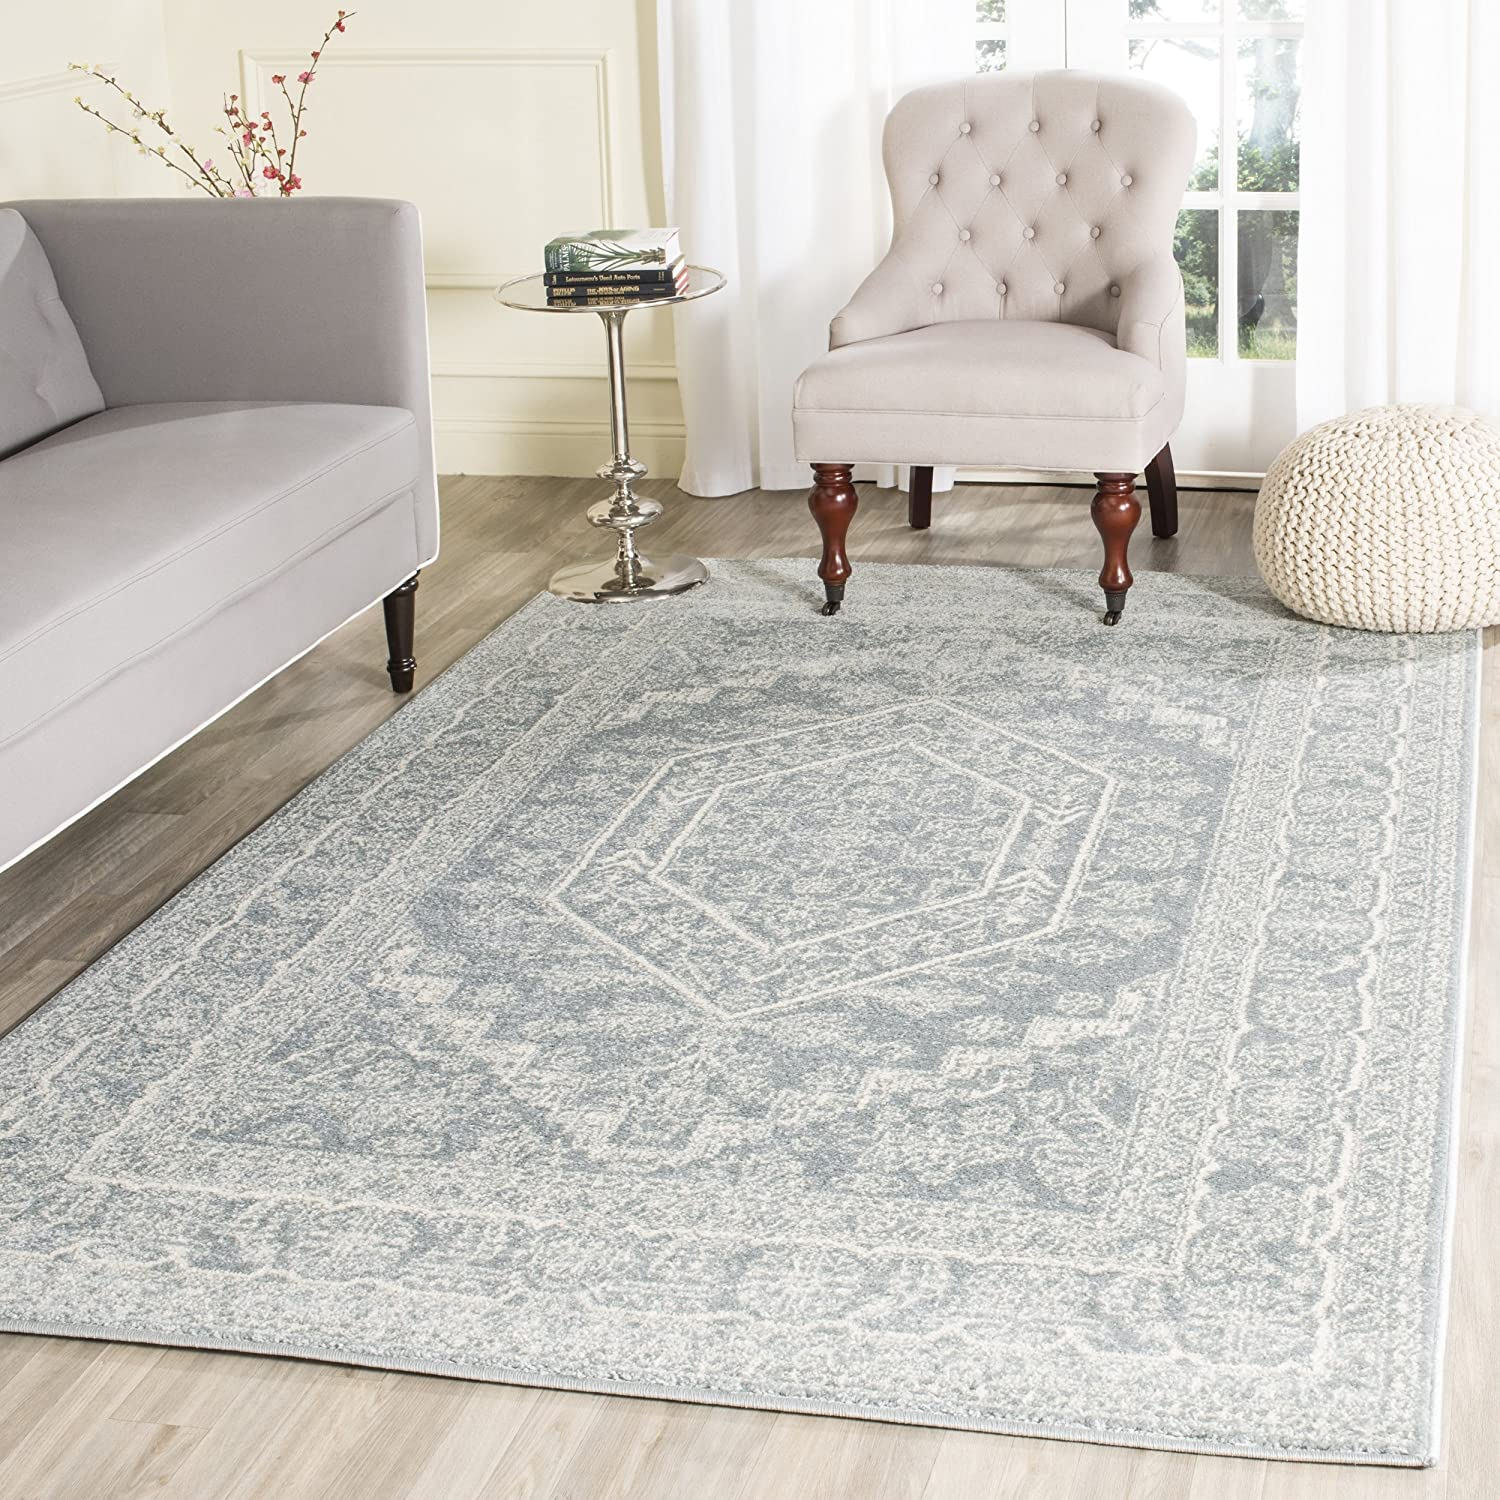 Amazon com safavieh adirondack collection adr108t slate and ivory oriental vintage medallion area rug 8 x 10 kitchen dining